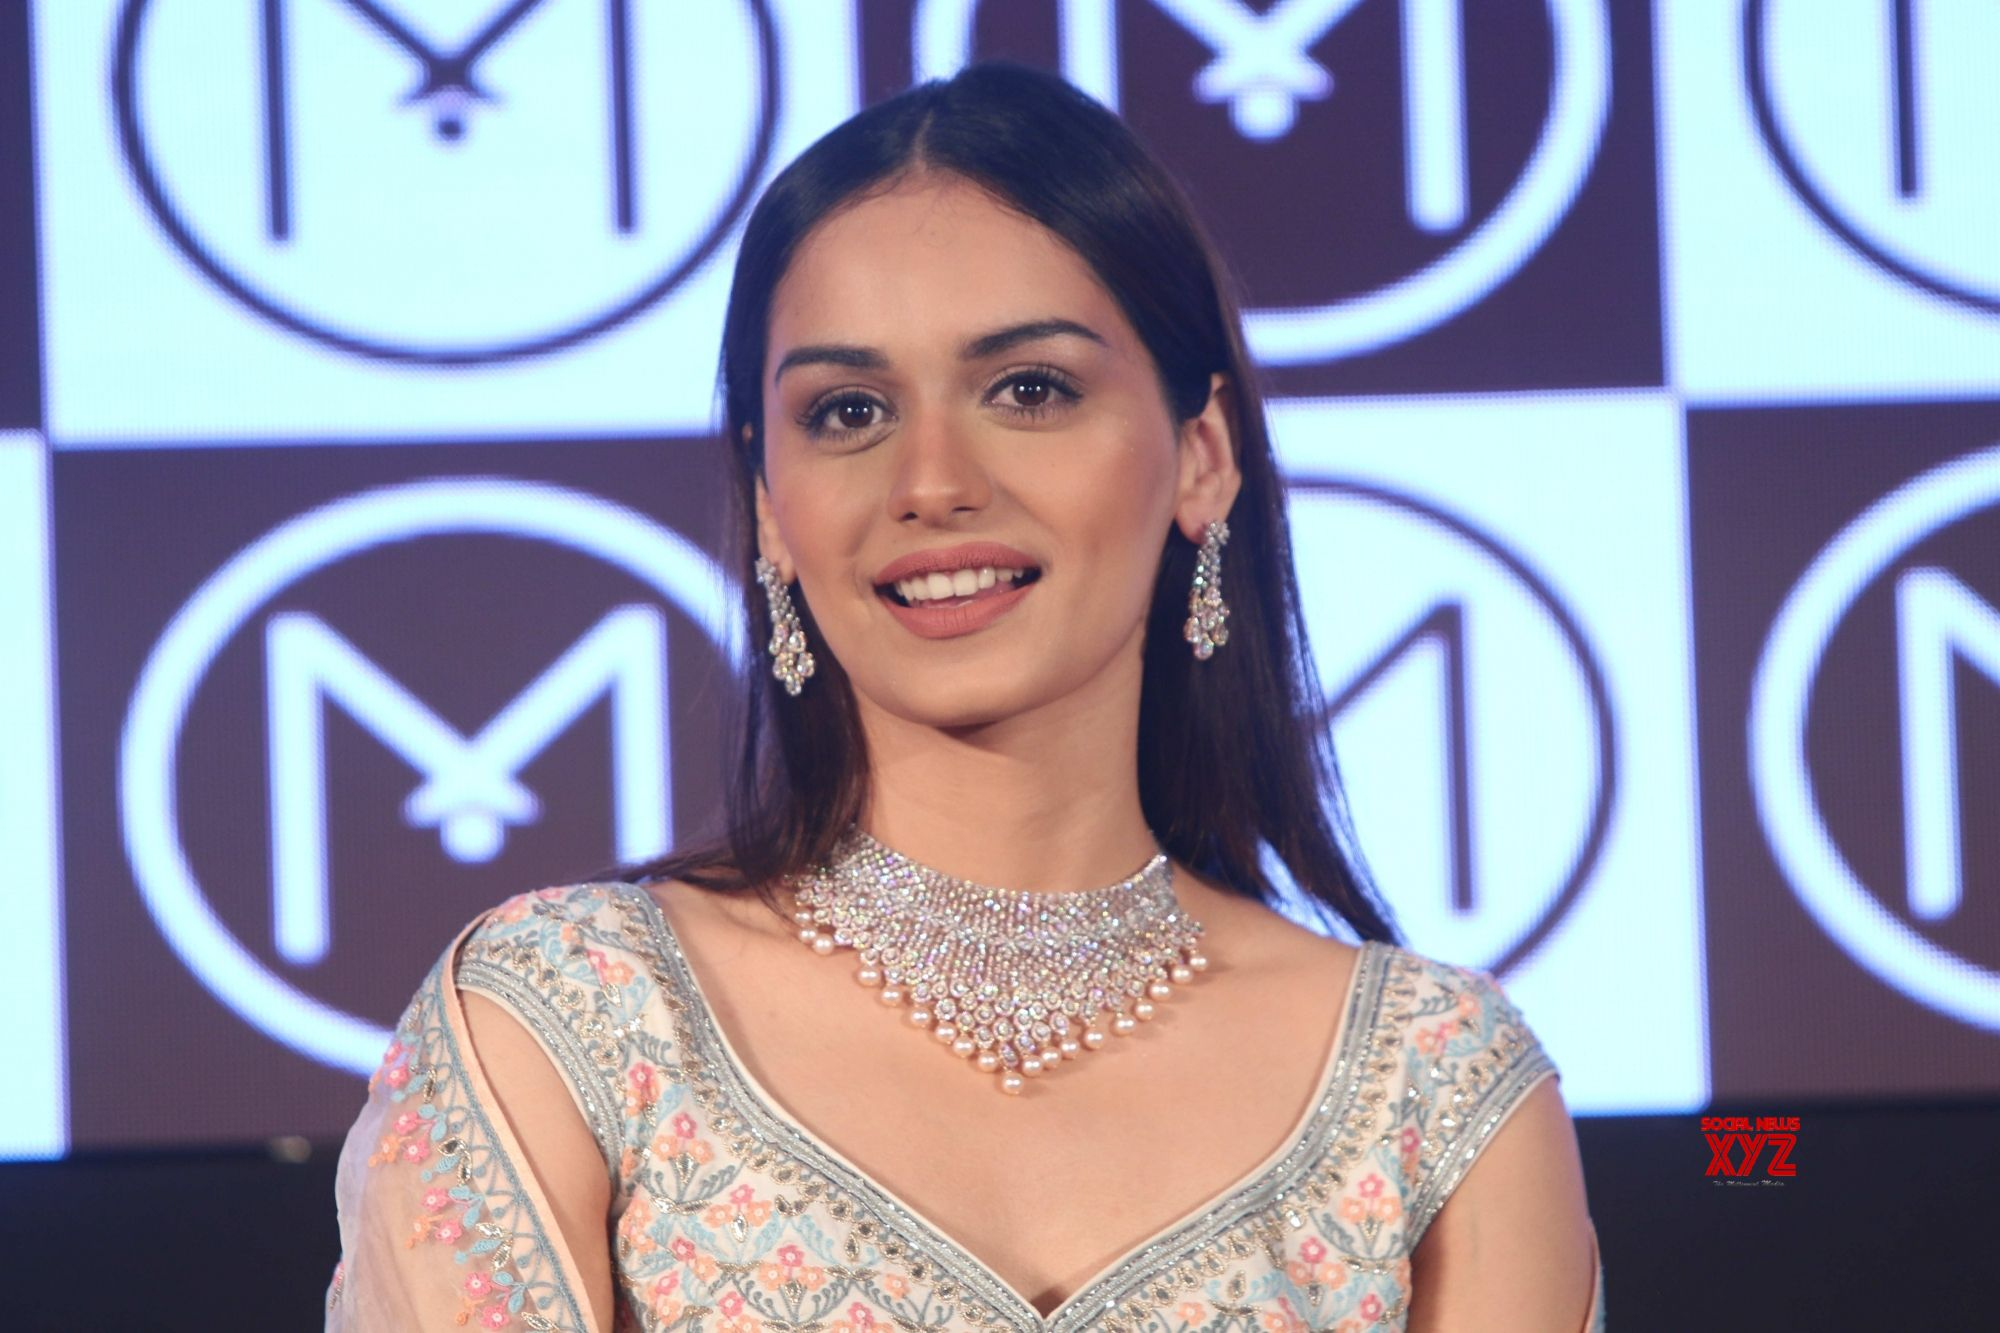 Want to do an action film: Manushi Chhillar